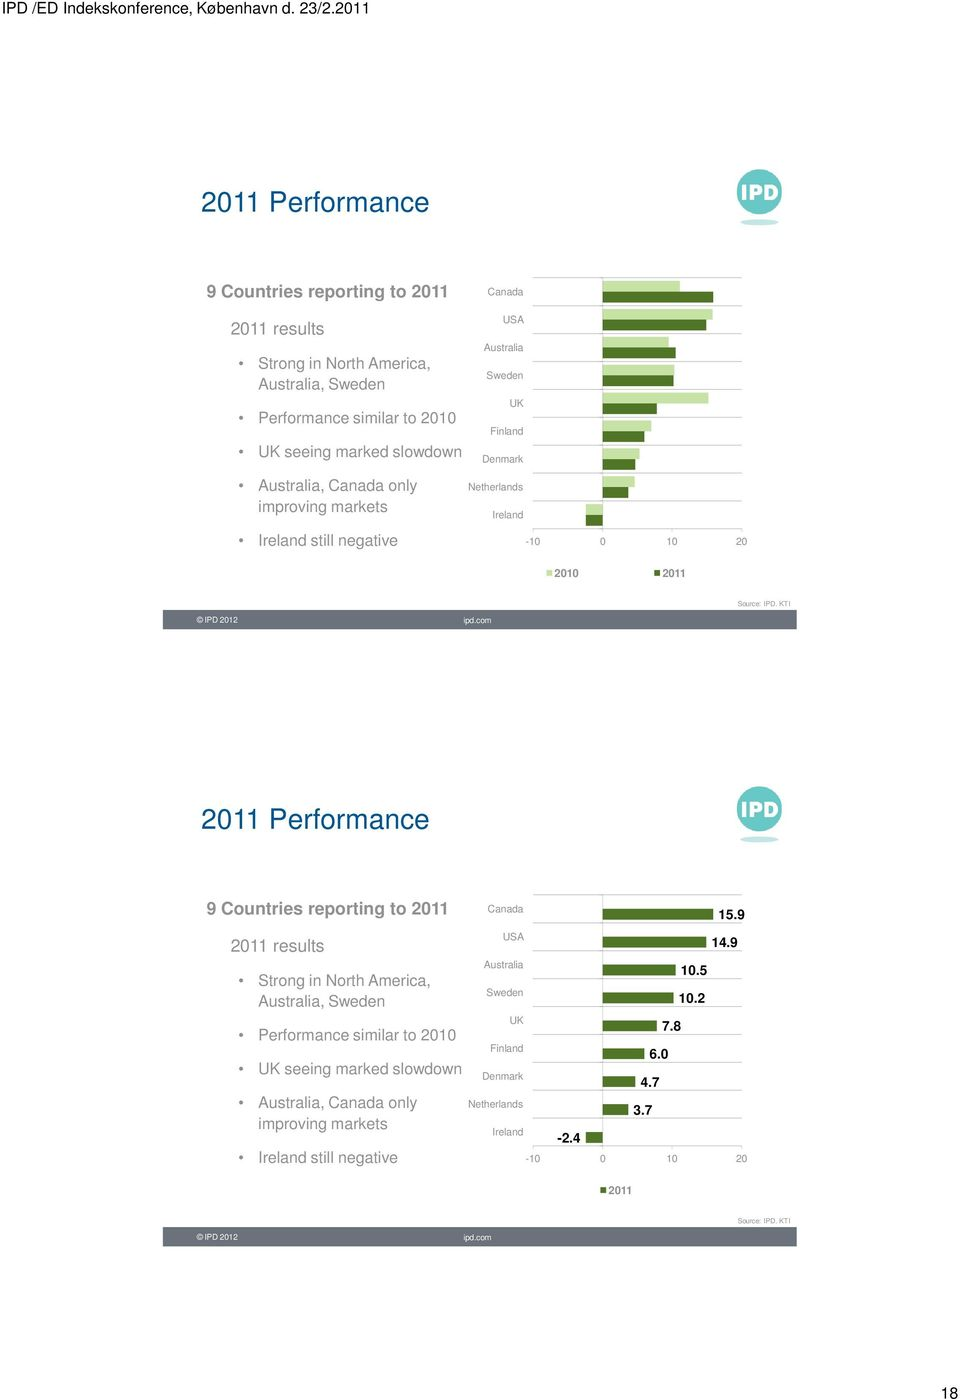 KTI 2011 Performance 9 Countries reporting to 2011 2011 results Strong in North America, Australia, Sweden Performance similar to 2010 UK seeing marked slowdown Australia, Canada